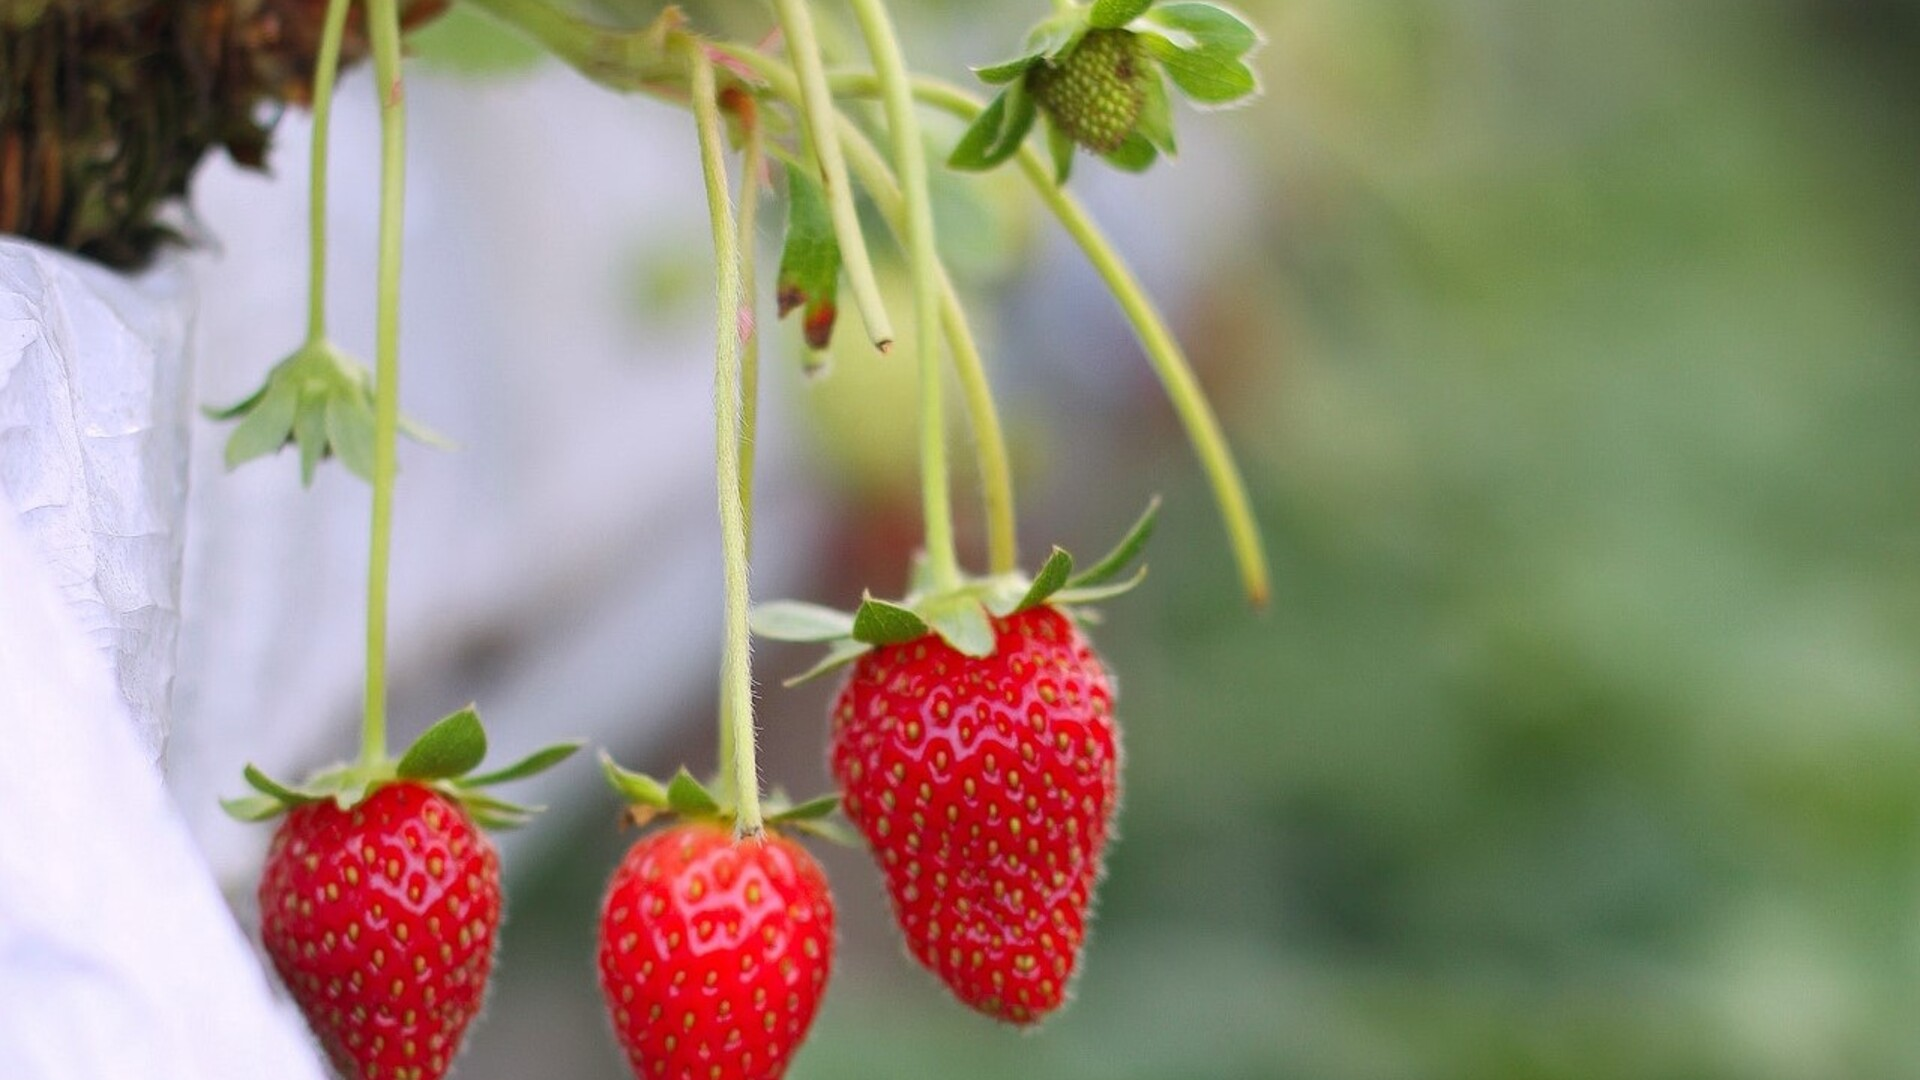 Strawberry Demand Projected to Remain Strong